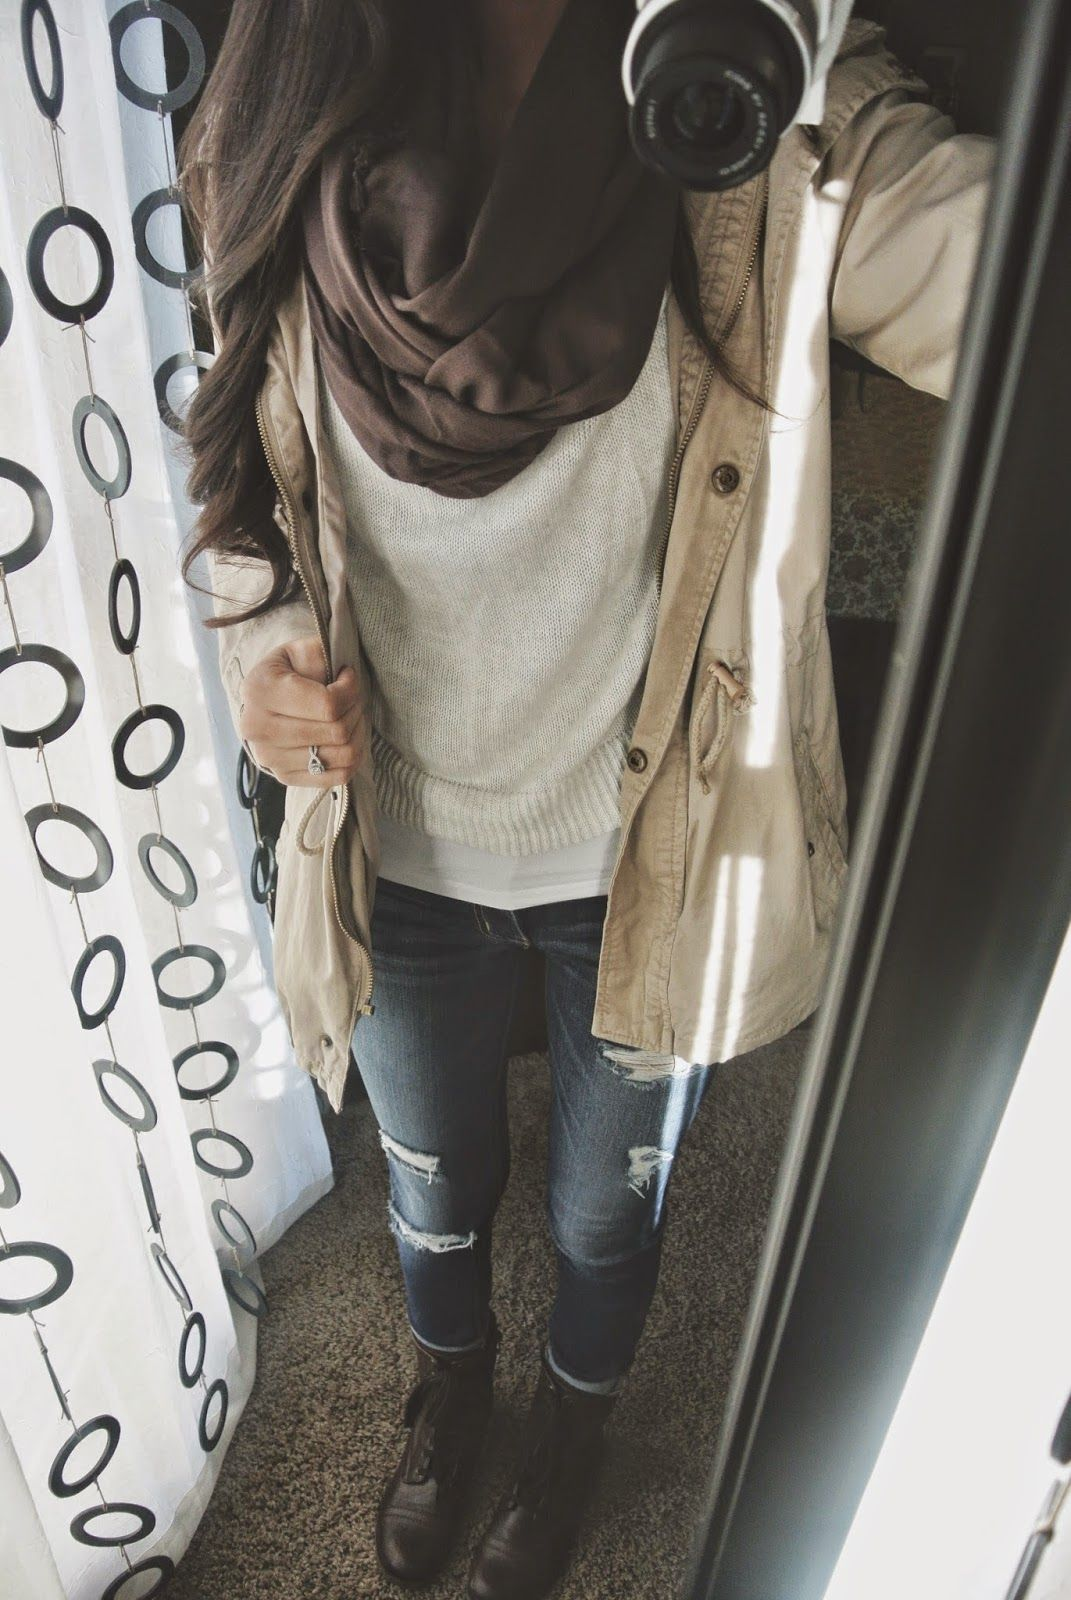 rainy day outfit | fall outfit | comfy | warm | trench ...